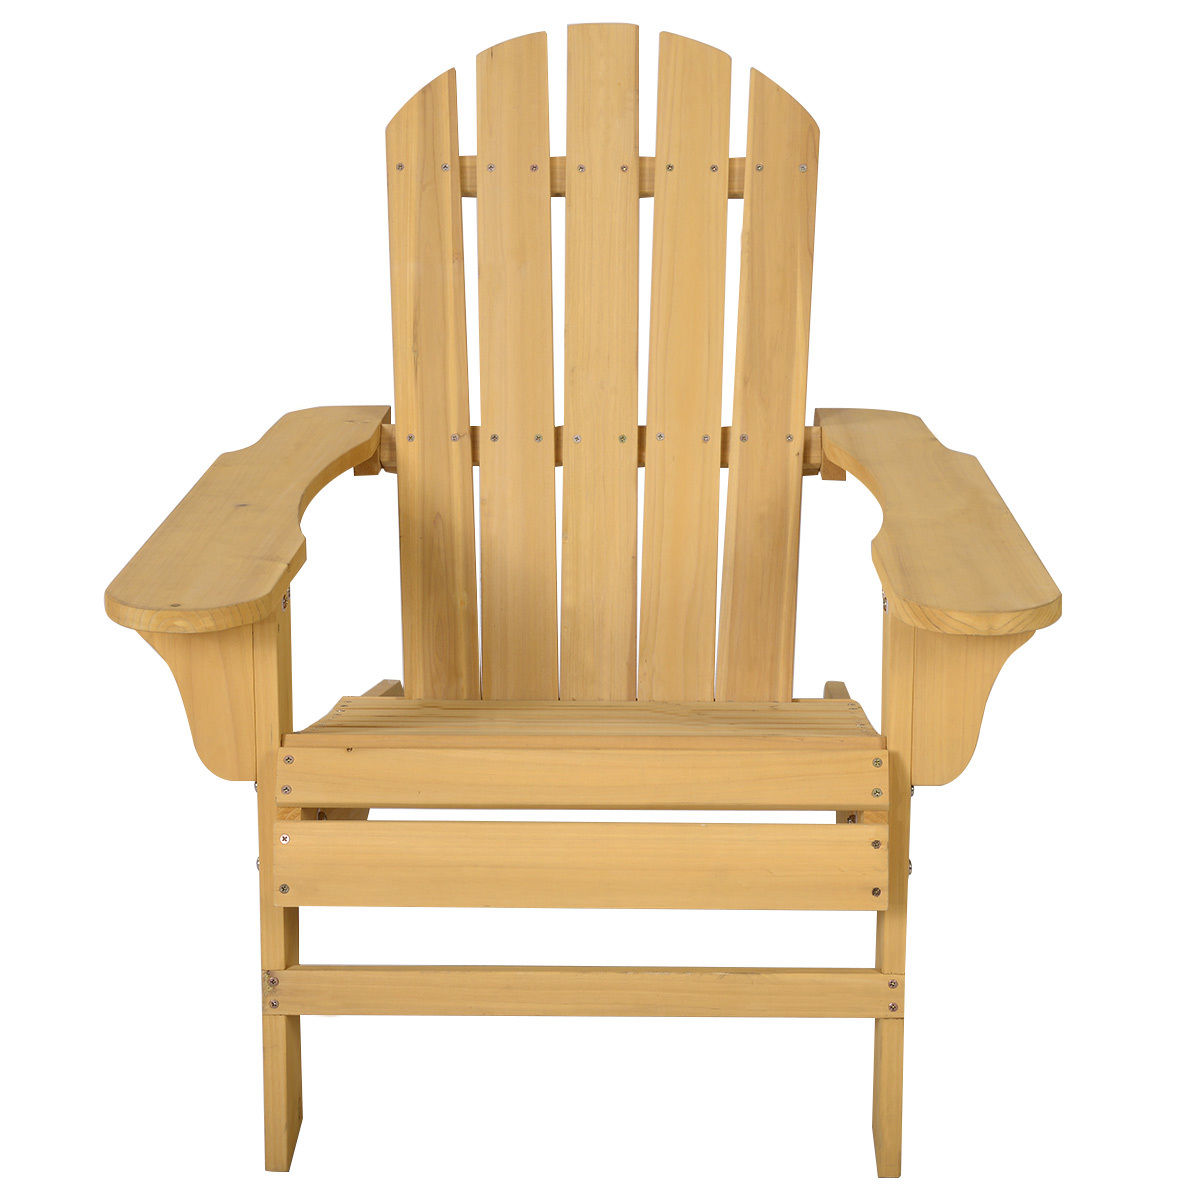 "GHP 29.5""x35.8""x32.6"" Natural Fir Wood Contoured Seat Outdoor Patio Adirondack Chair"